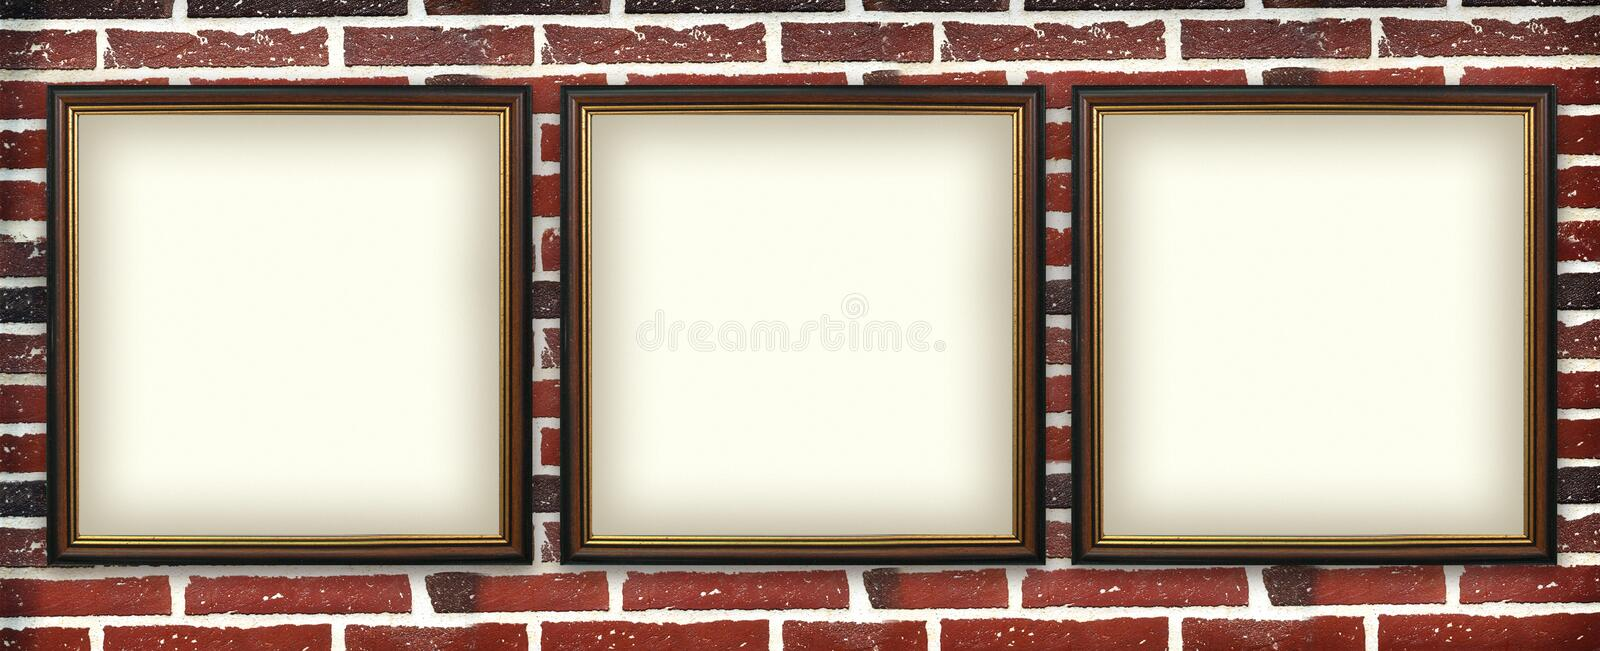 Art exhibition. Art photo frame on a brick wall. urban exhibition royalty free stock photography